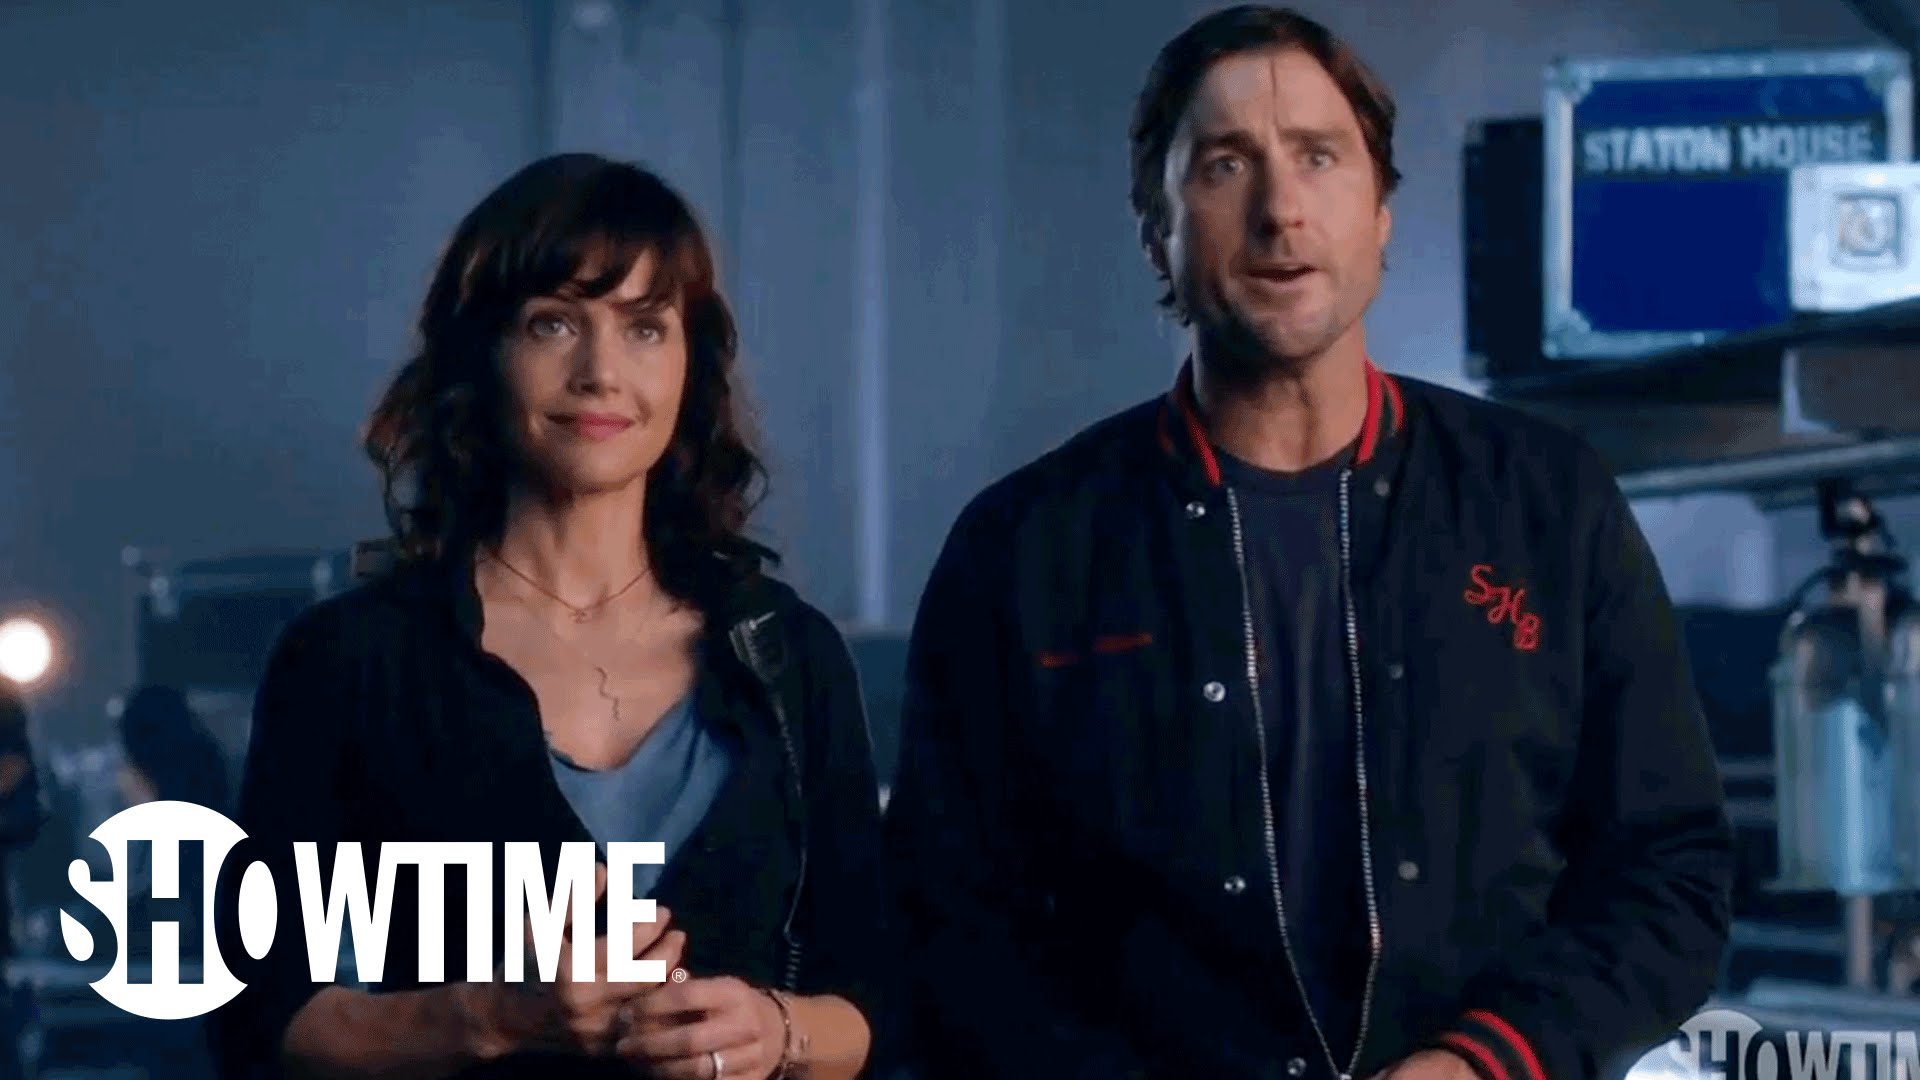 """We're excited to have our song """"Light Me Up"""" included in the new Showtime series """"Roadies."""" The song is being used in the promotional trailer. Can't wait to see it when it premieres on June 26!"""